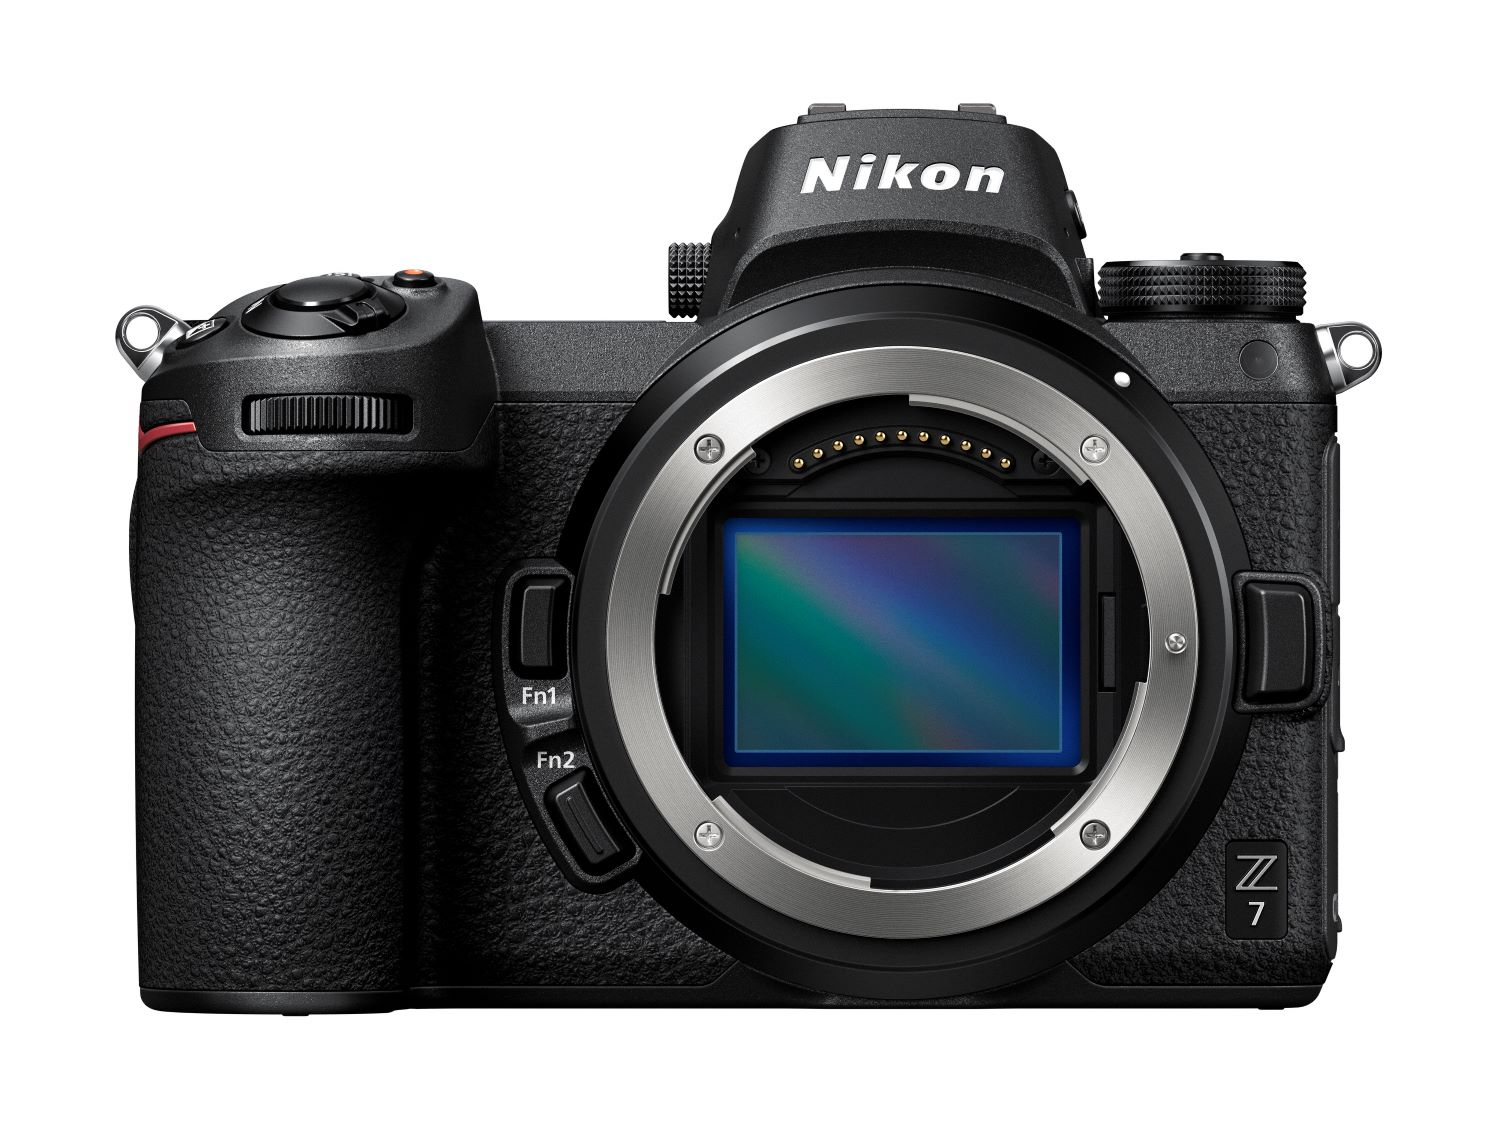 https://i2.wp.com/digital-photography-school.com/wp-content/uploads/2020/05/Nikon-new-mirrorless-cameras-1.jpg?ssl=1